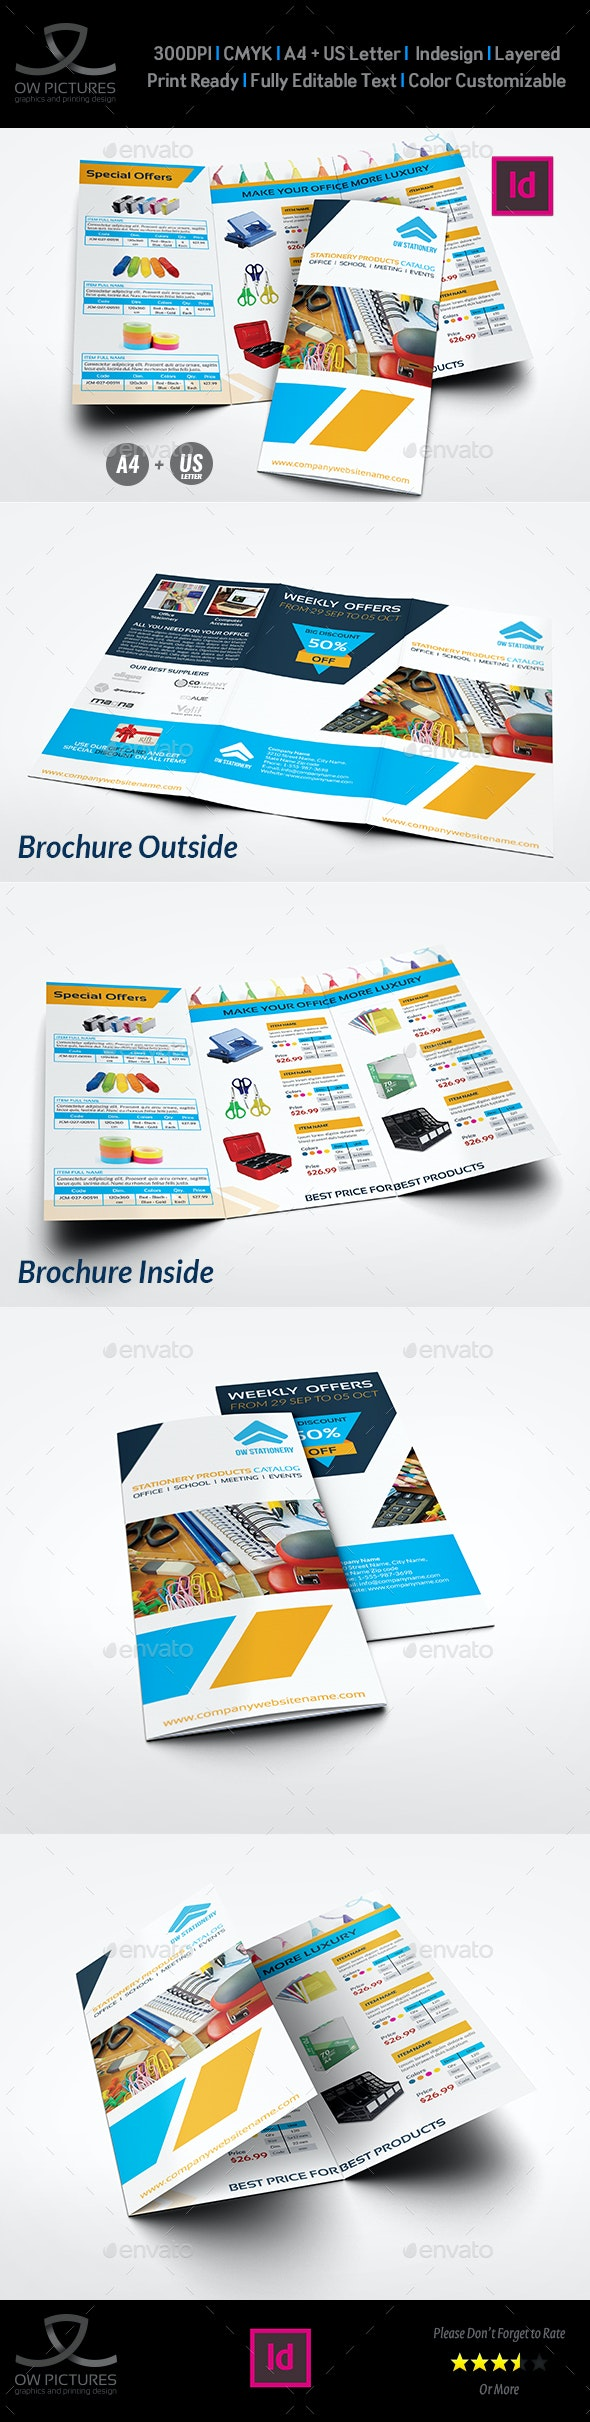 Stationery Products Catalog Tri- Fold Brochure Template - Catalogs Brochures